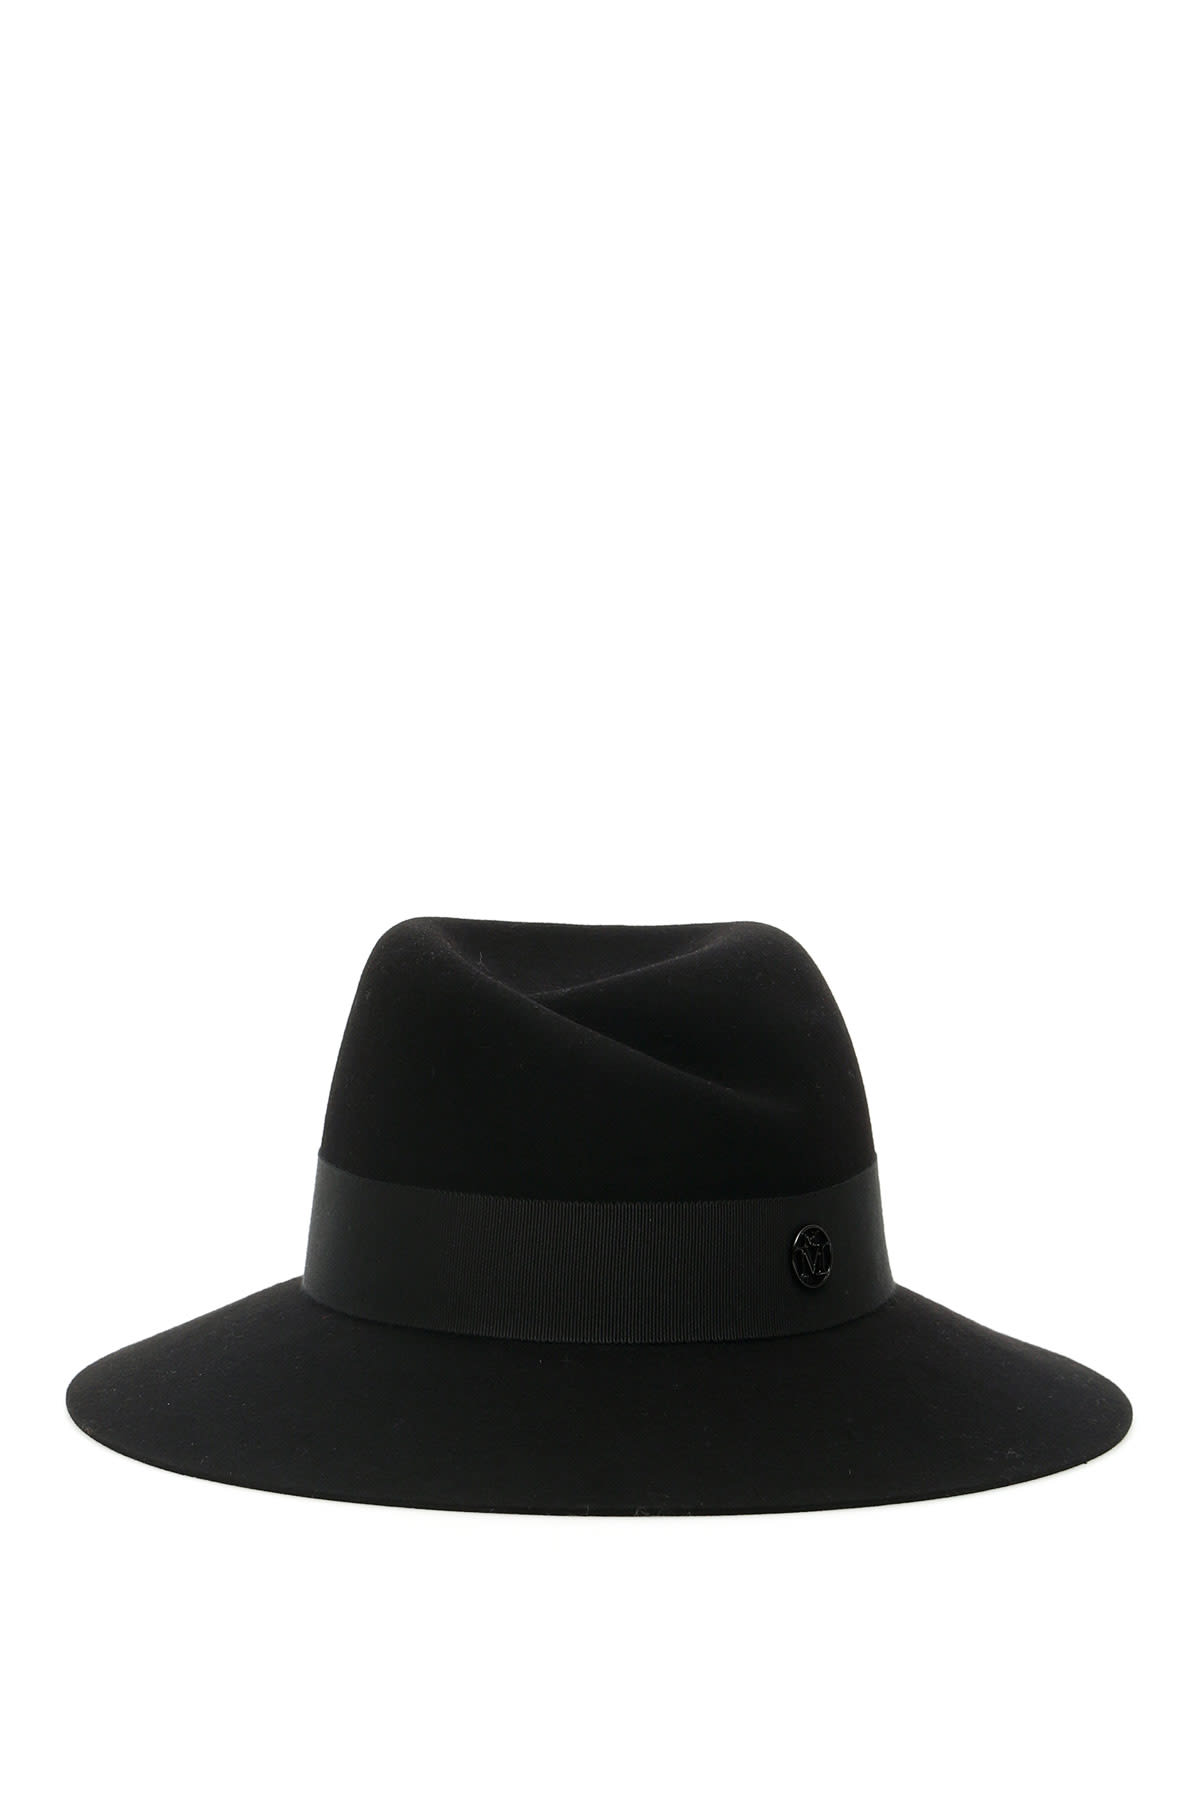 Maison Michel VIRGINIE WOOL FELT HAT